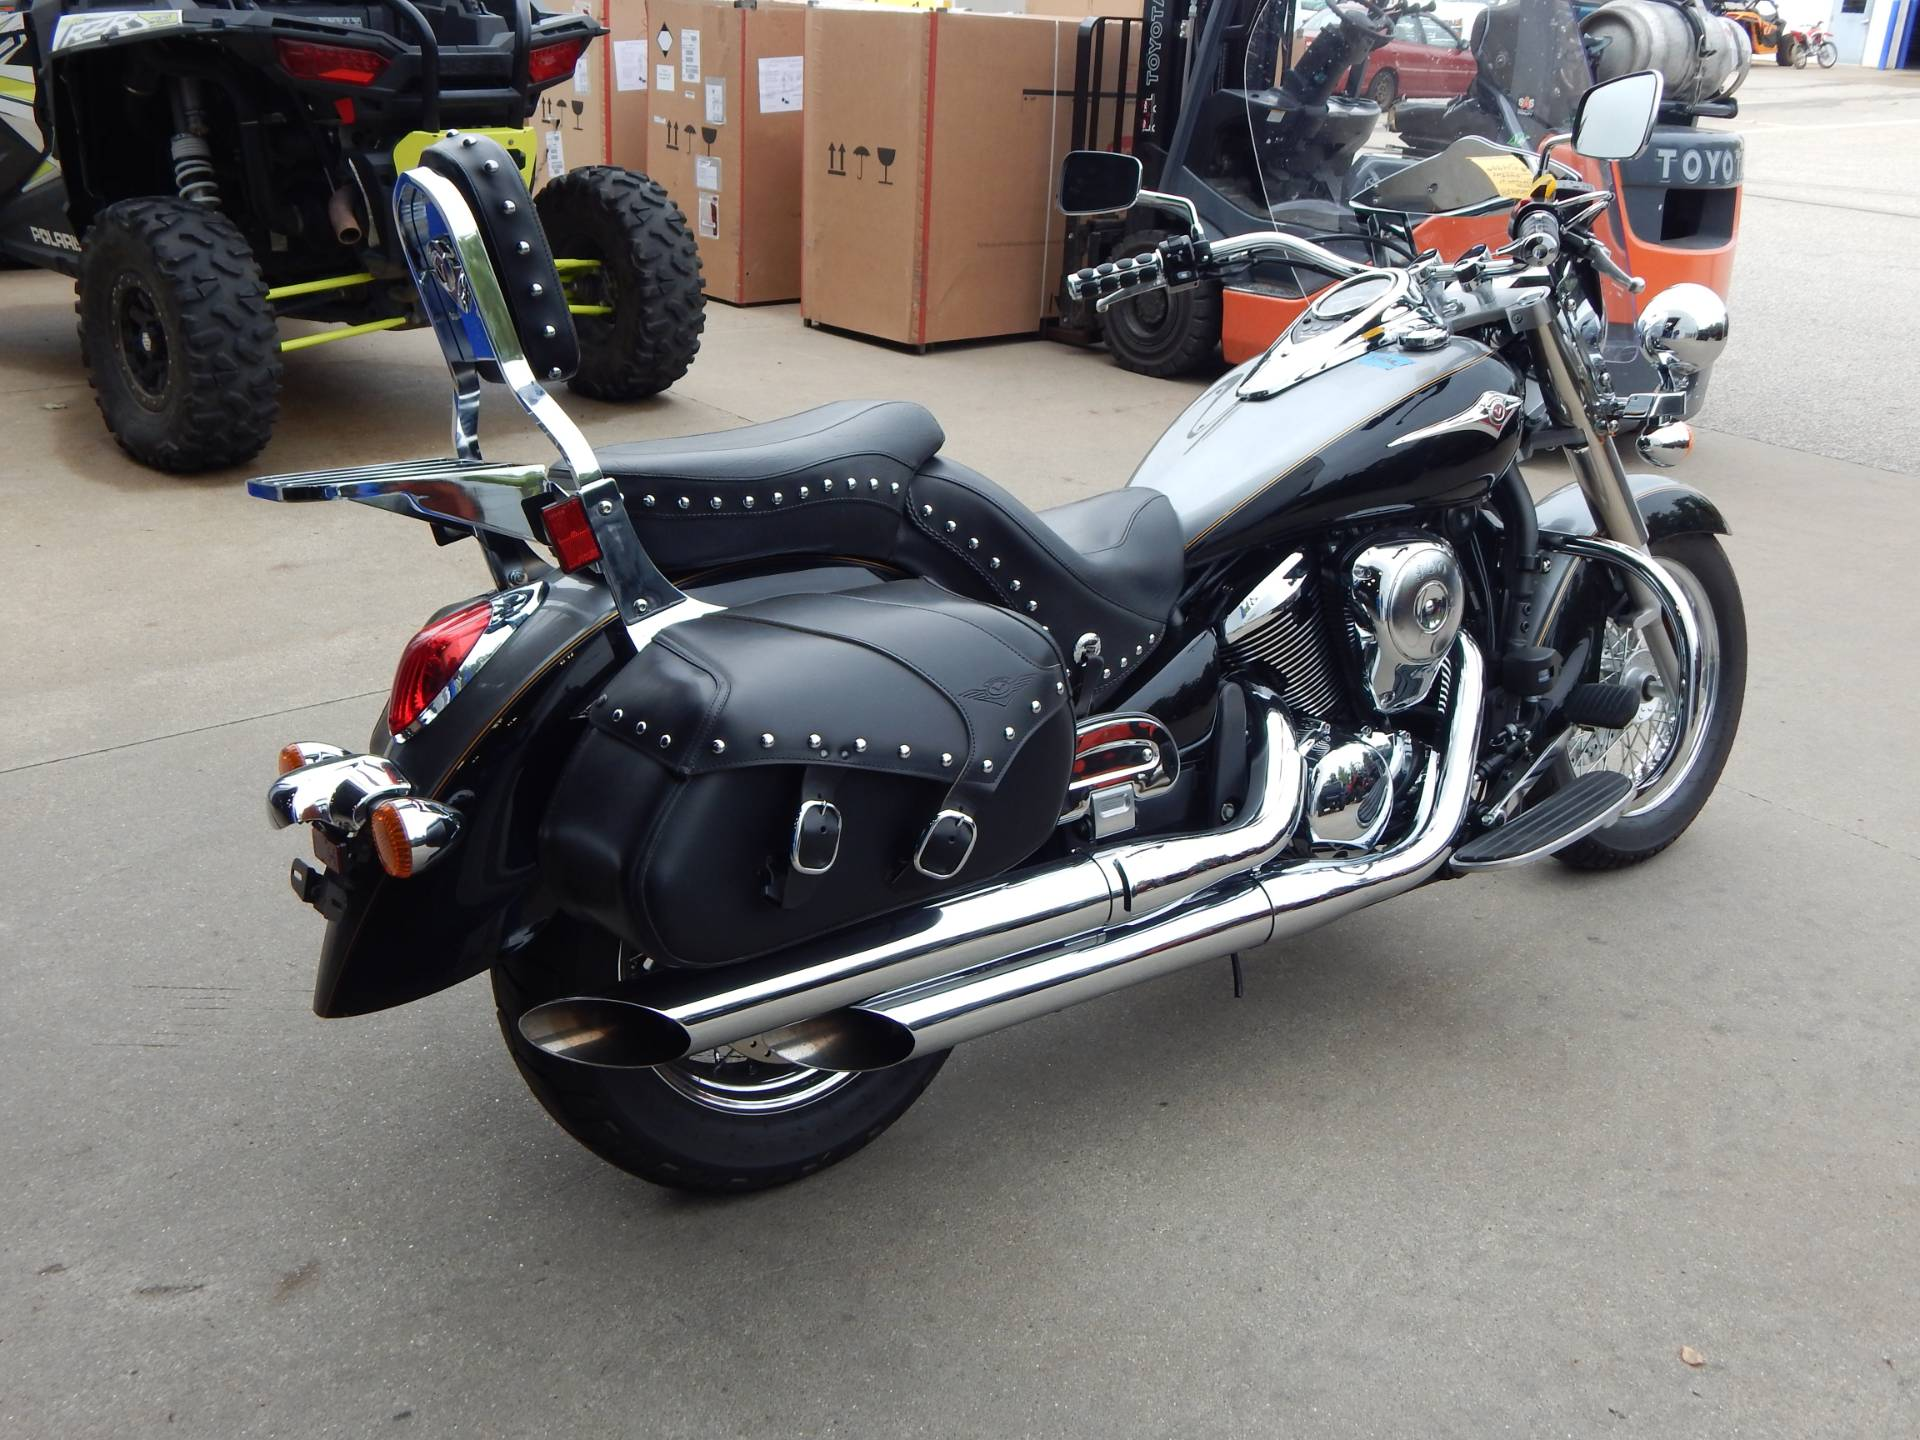 2012 Kawasaki VN900LT in Concord, New Hampshire - Photo 6